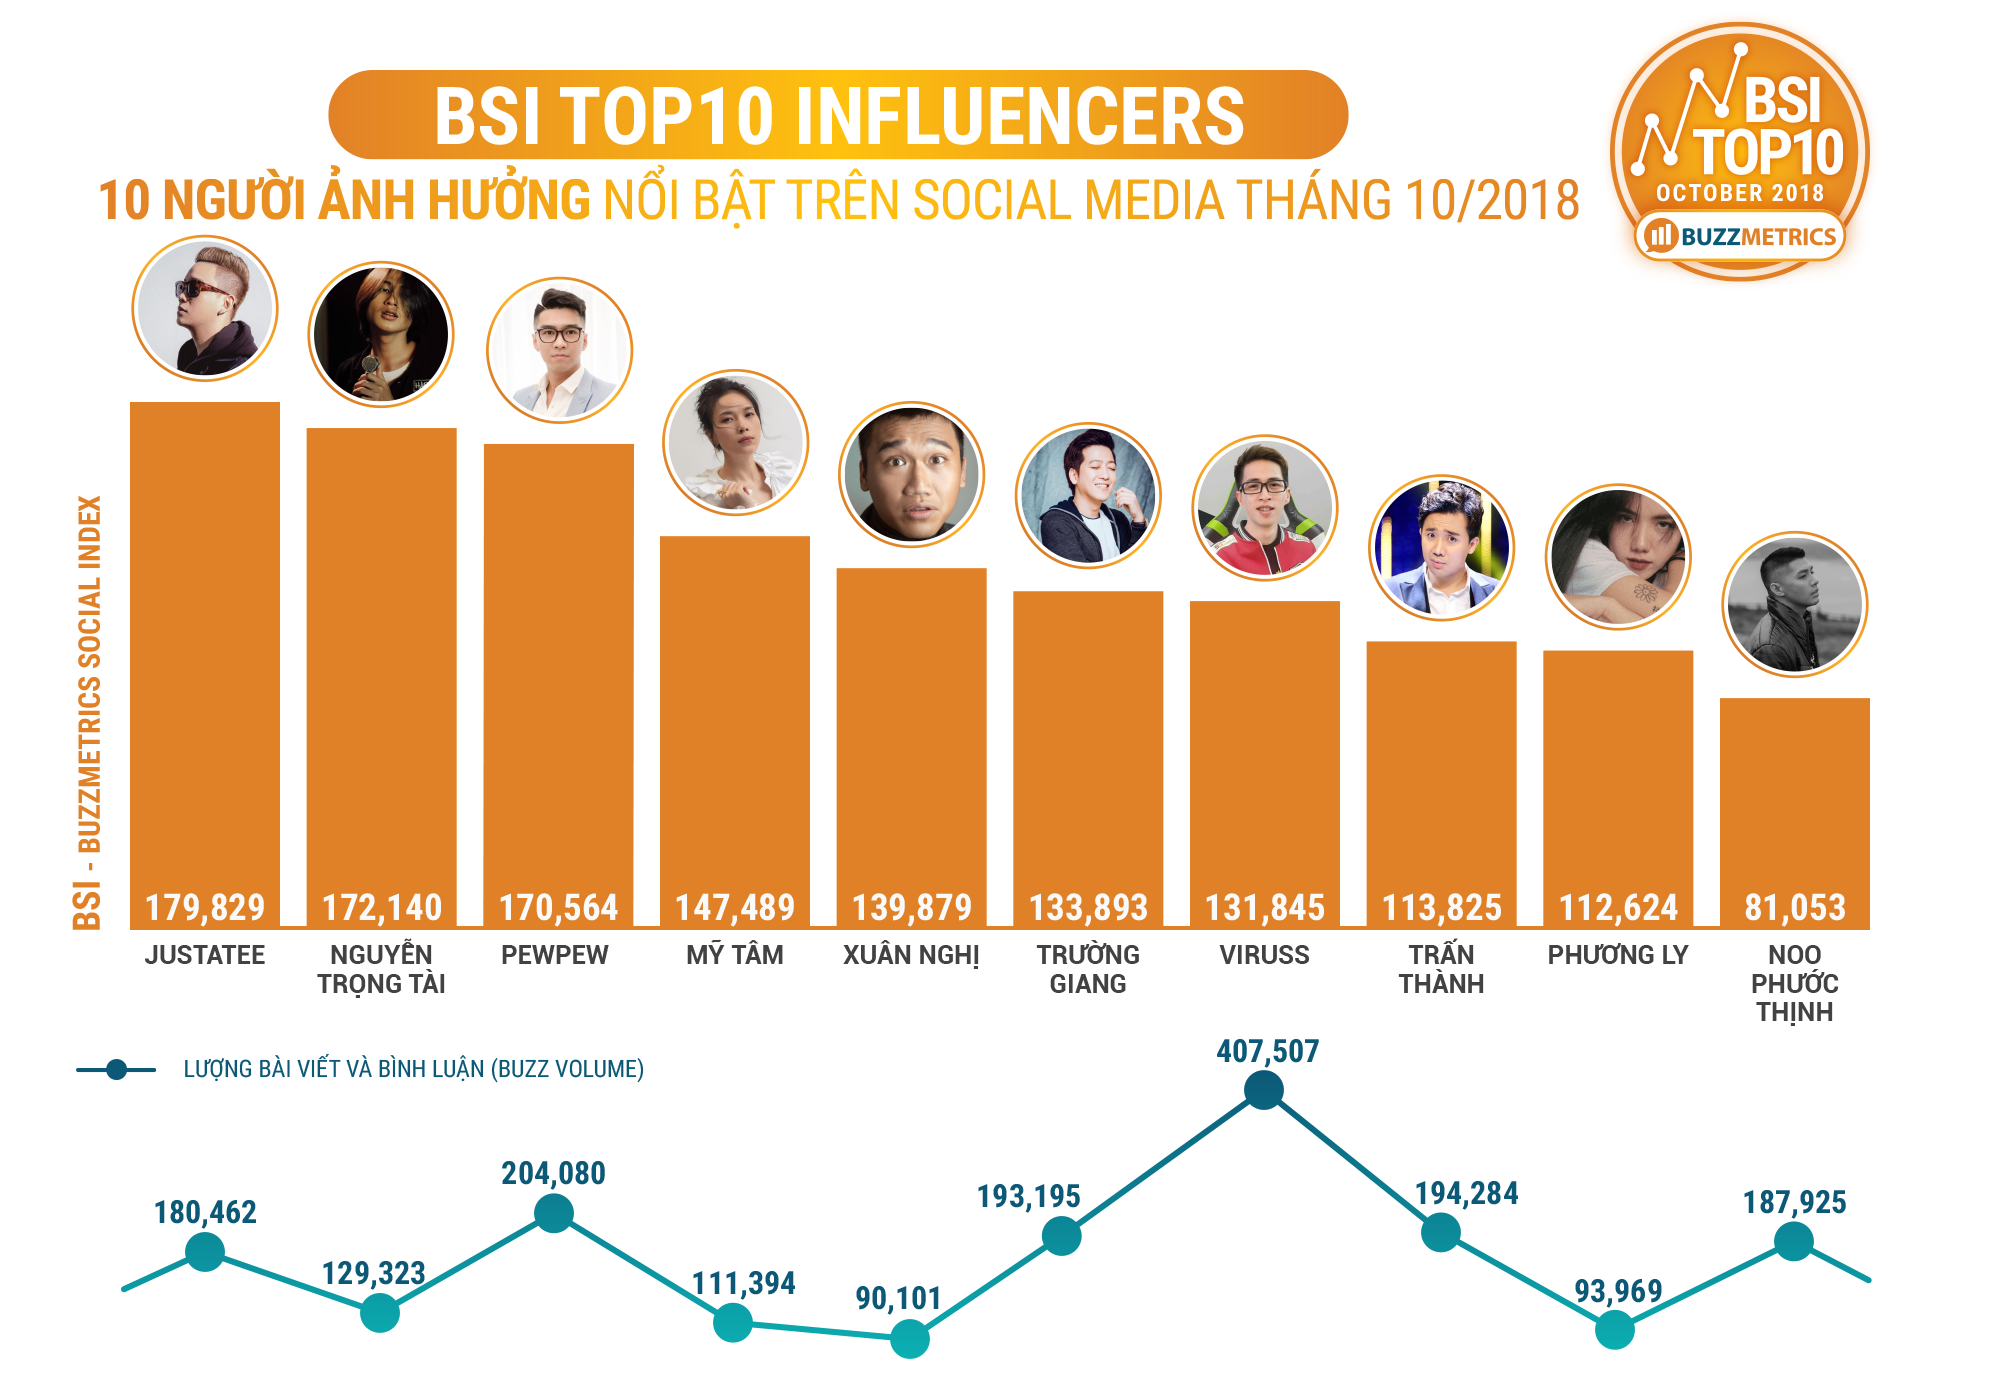 BSI Top10 Influencers 10/2018